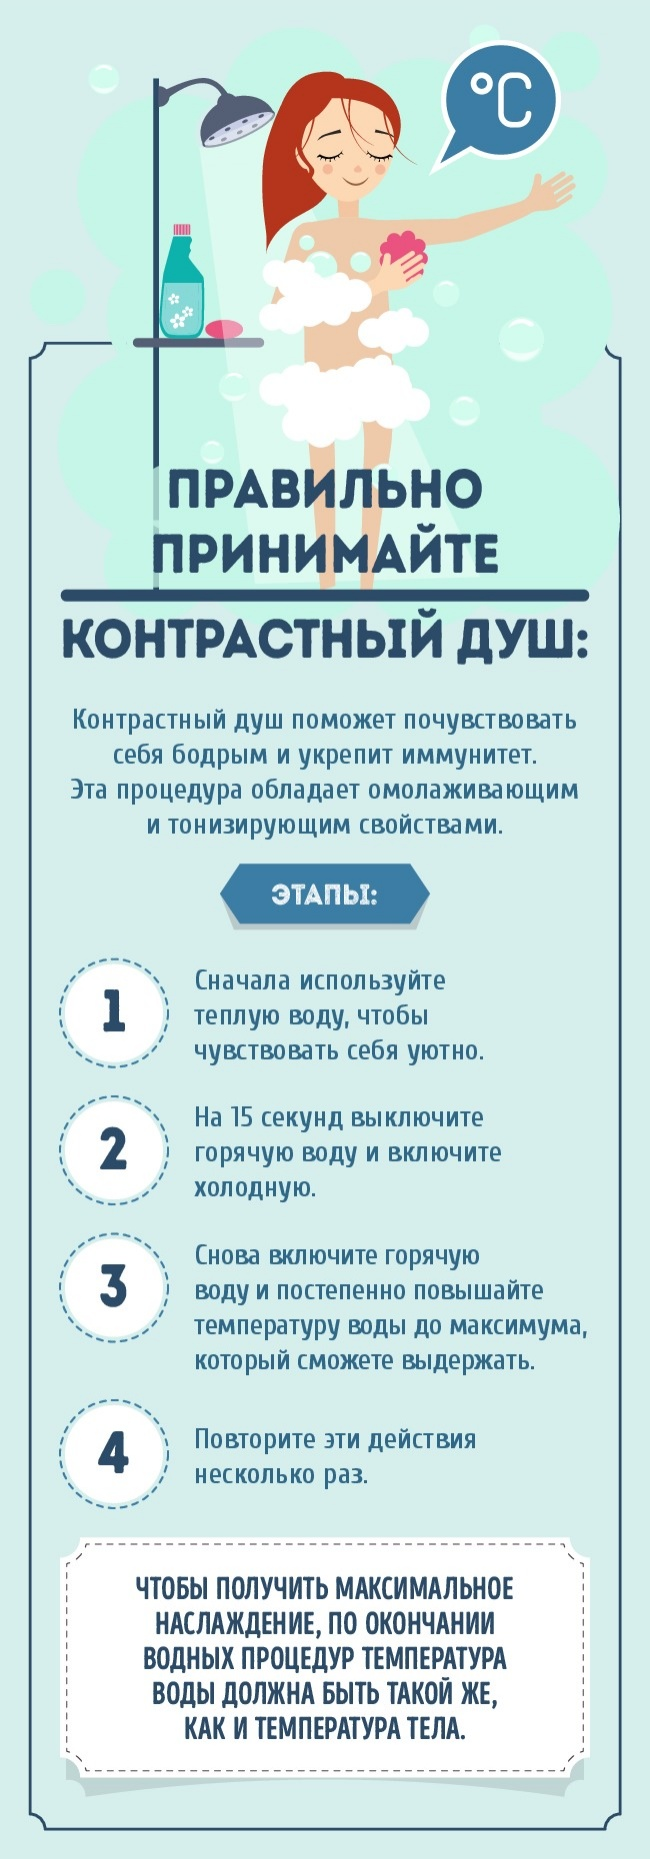 17763015-139521_infographics-1475245092-650-1ccd54f71a-1-1475570303